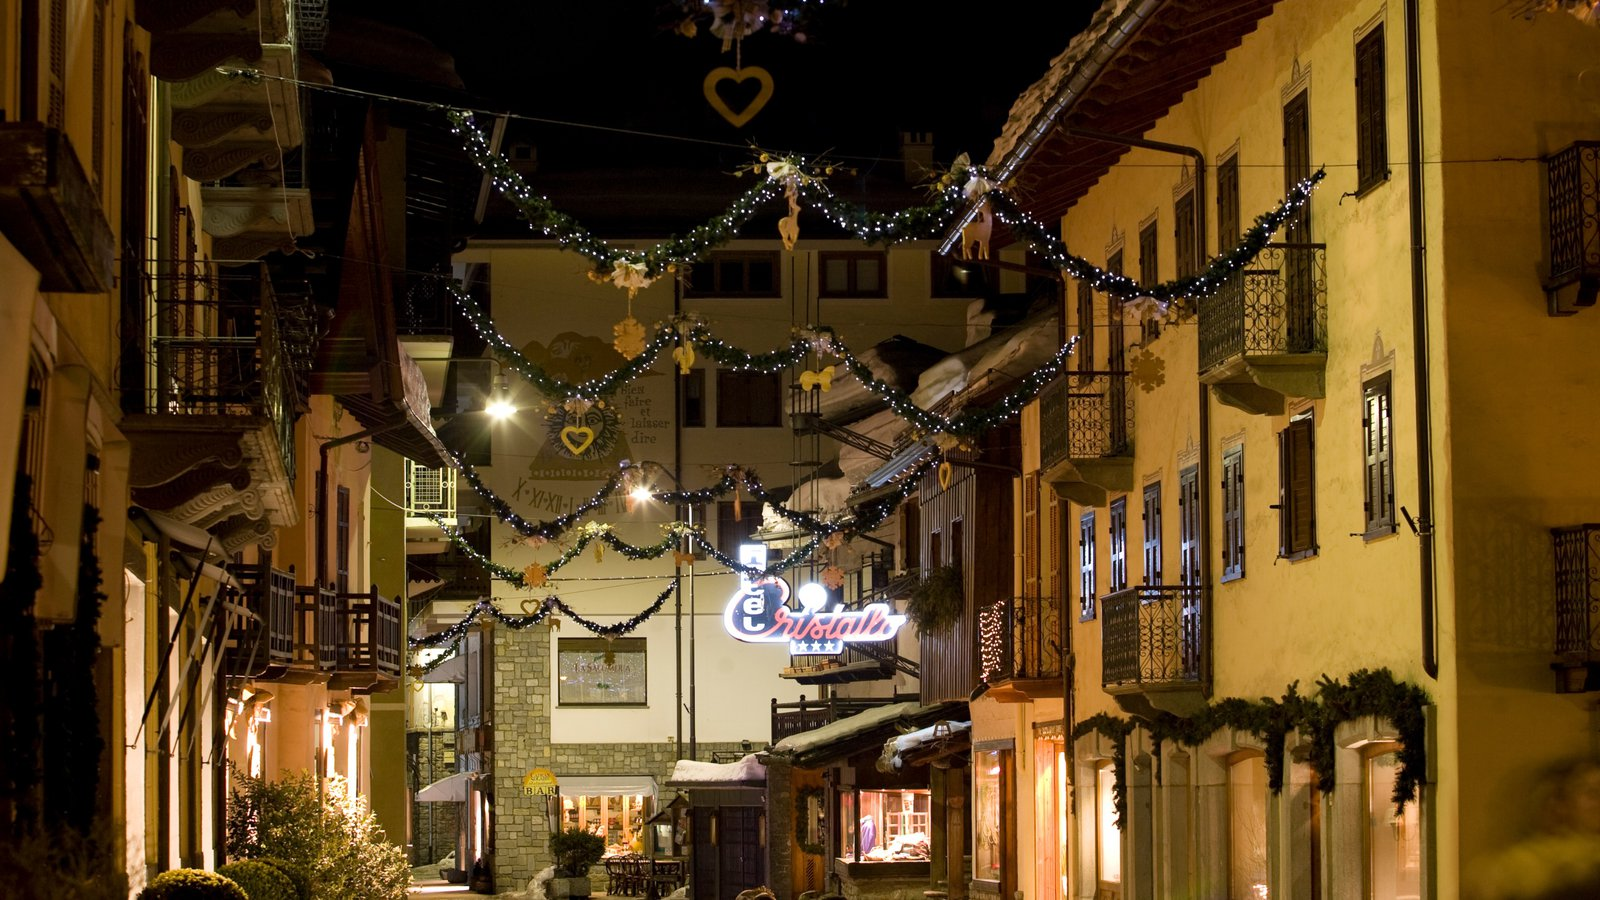 Courmayeur showing street scenes and night scenes